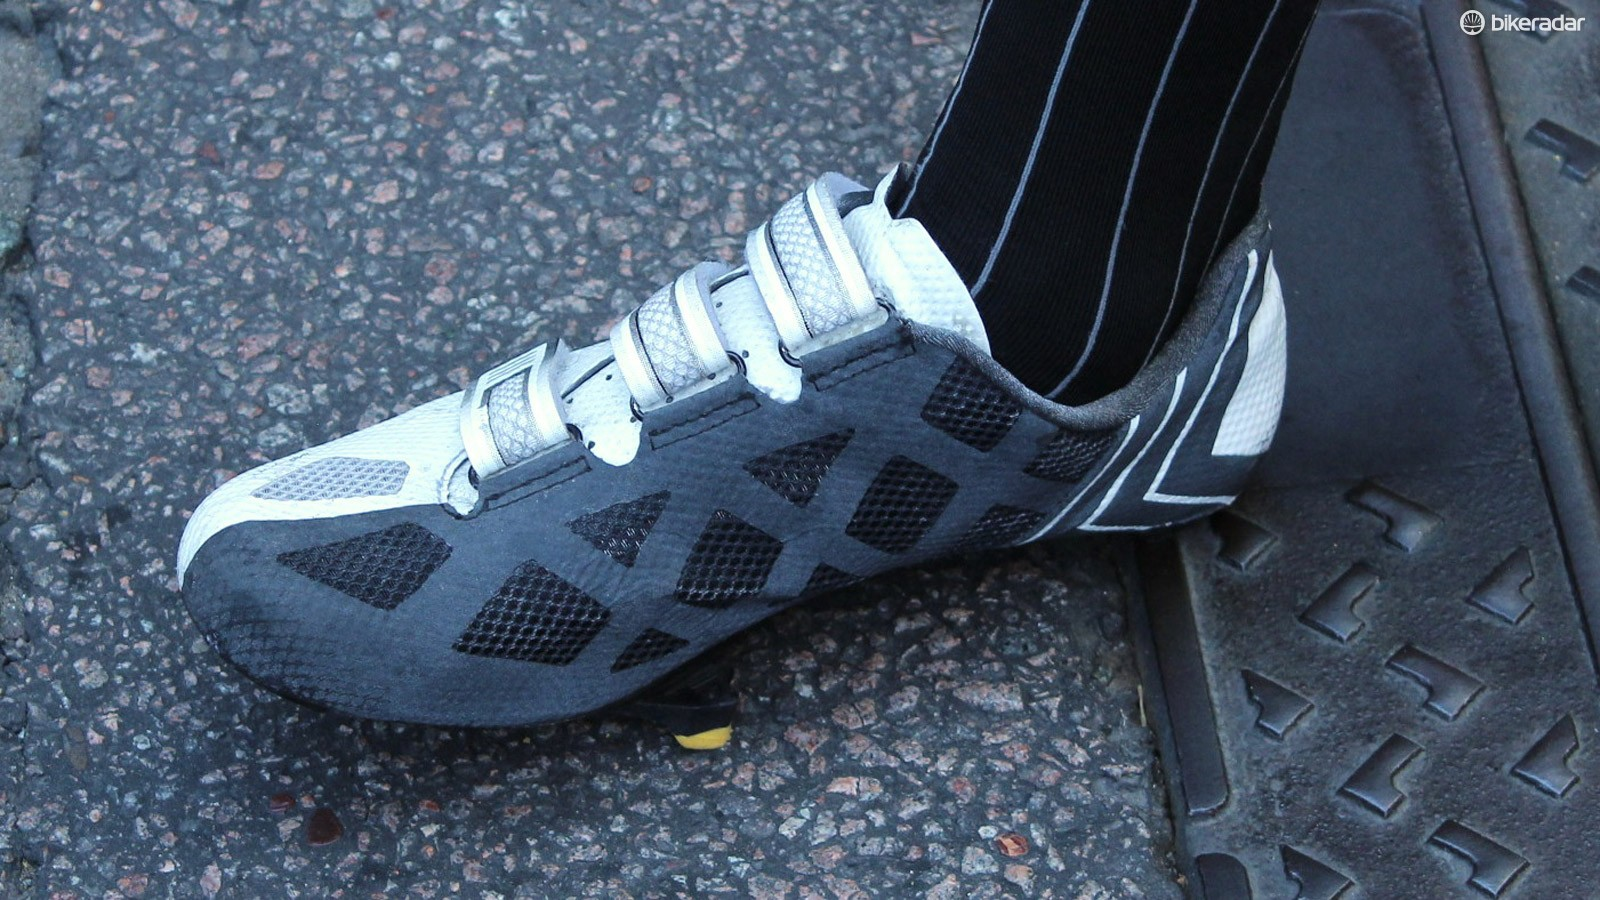 These are likely prototypes for a next-edition Bontrager XXX LE shoe